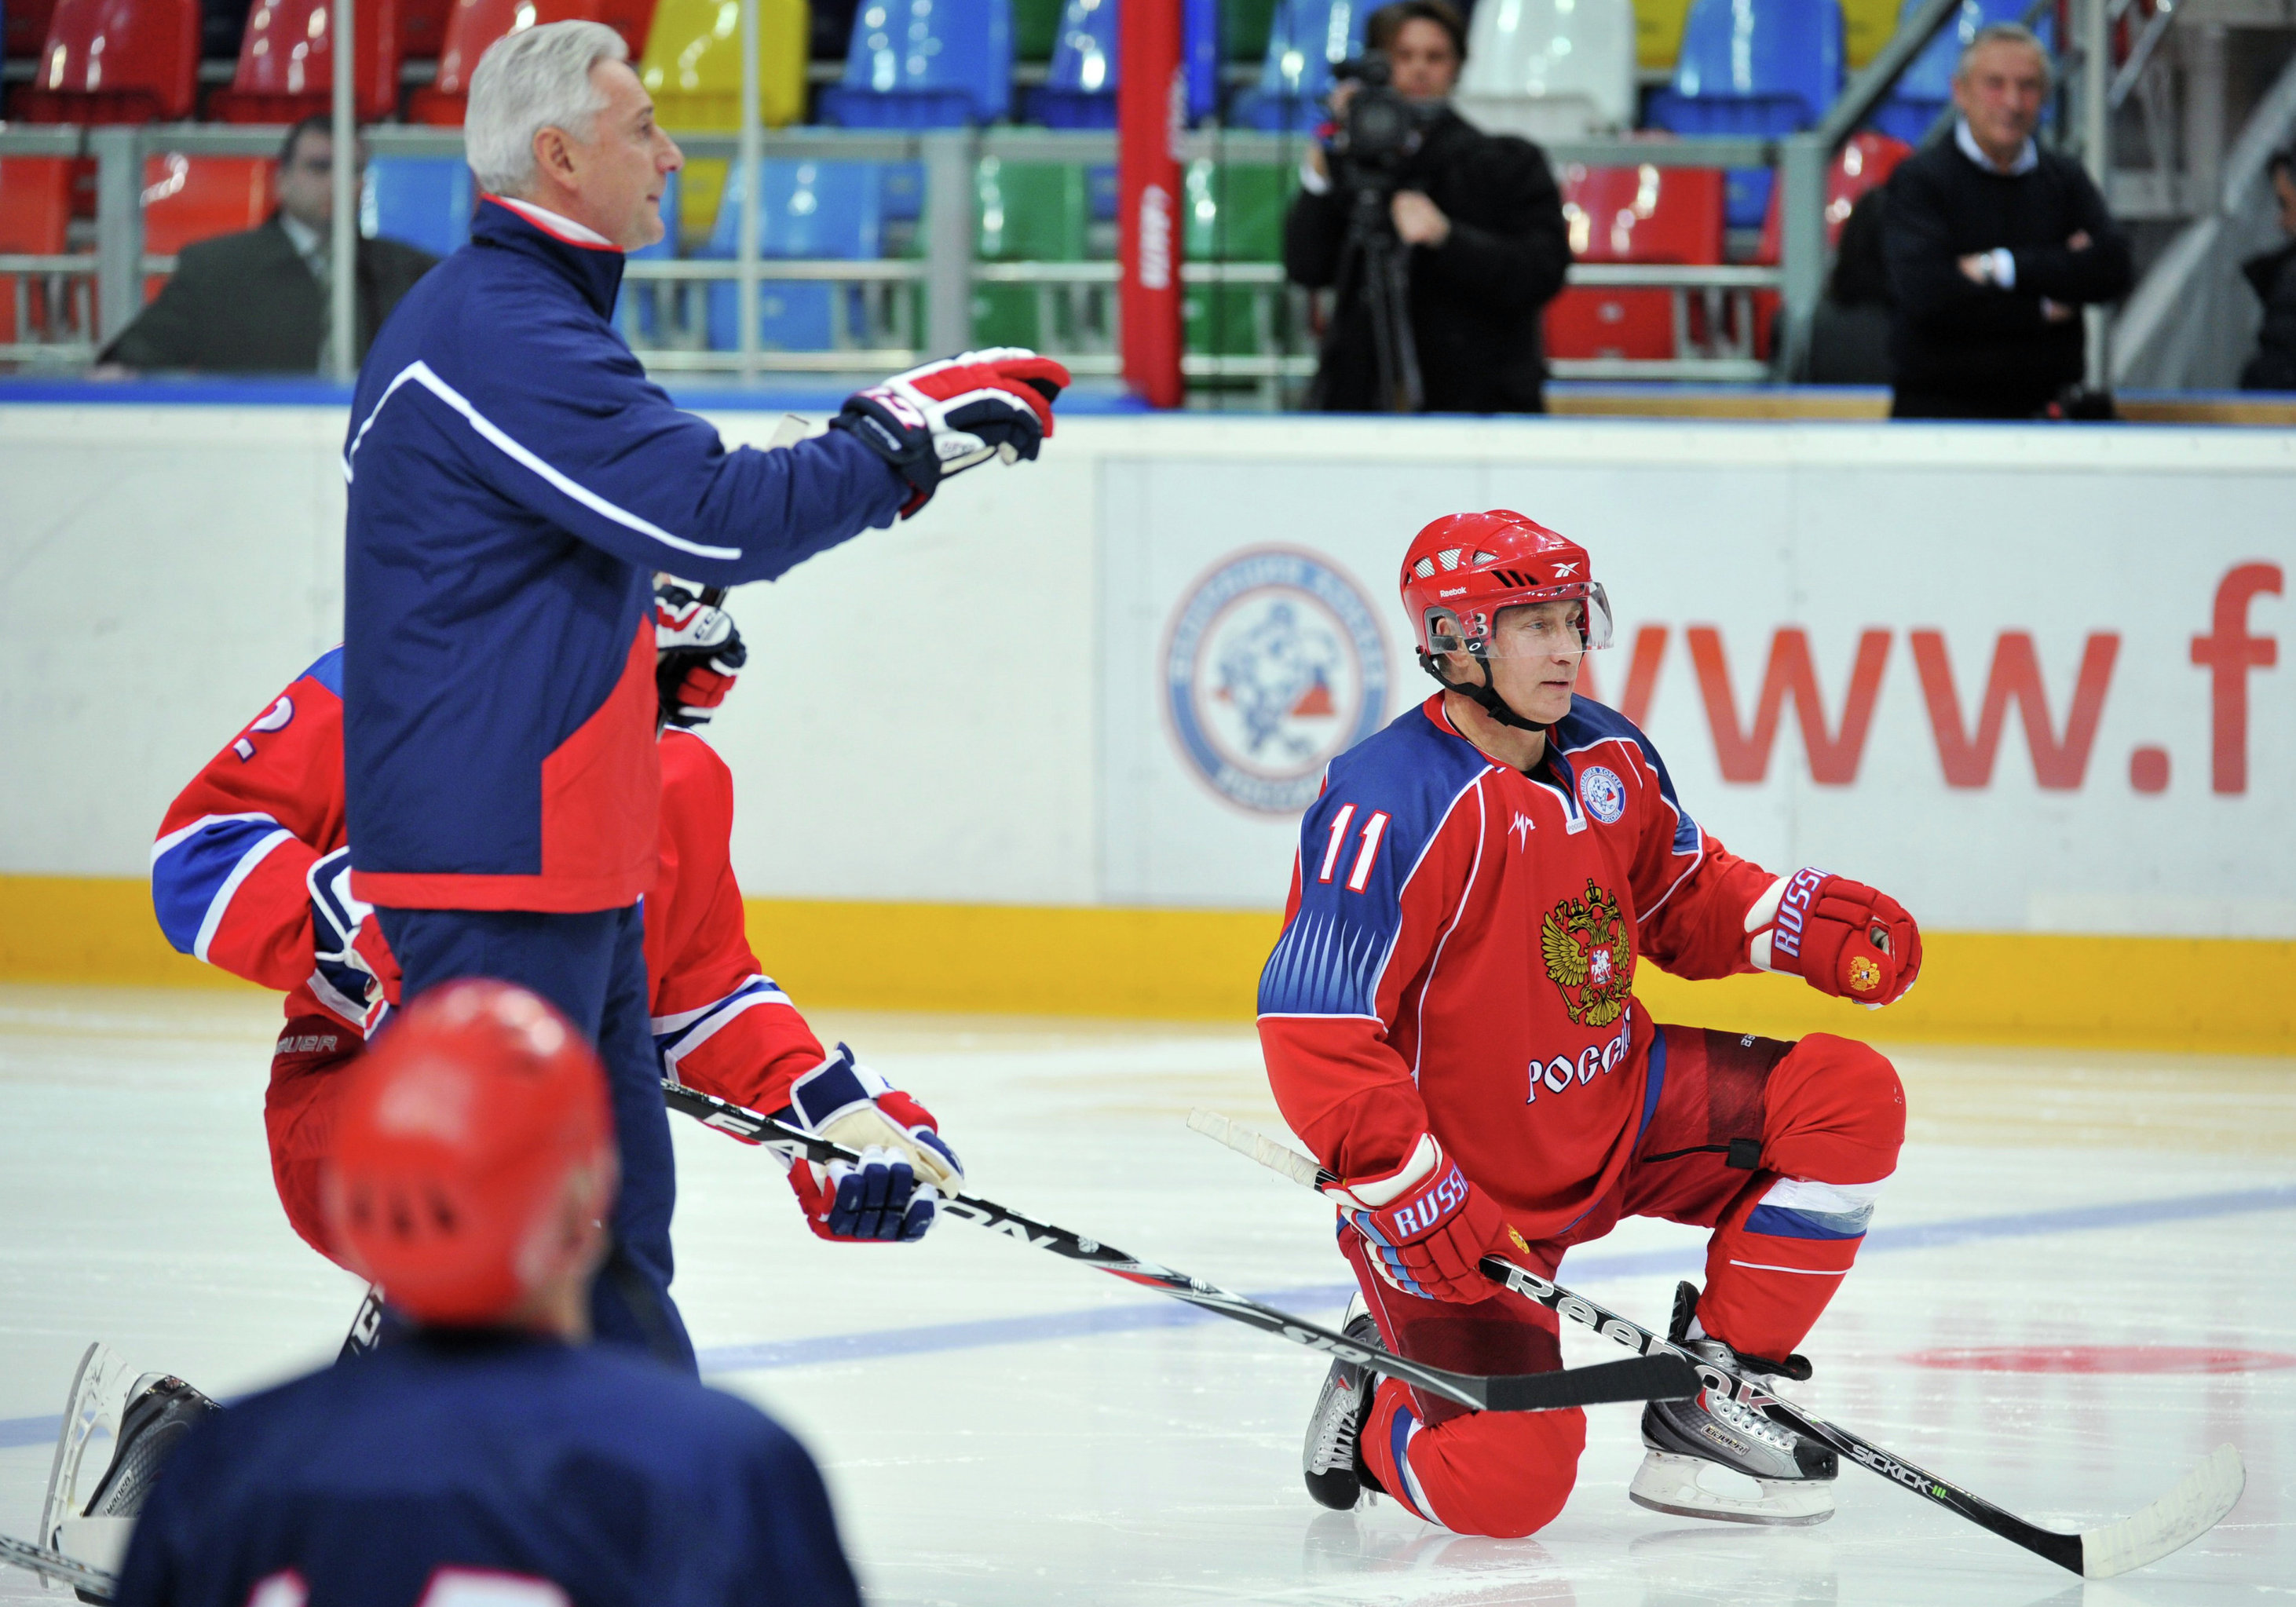 Vladimir Putin plays hockey with the Legends of USSR Hockey club on November 18, 2011.